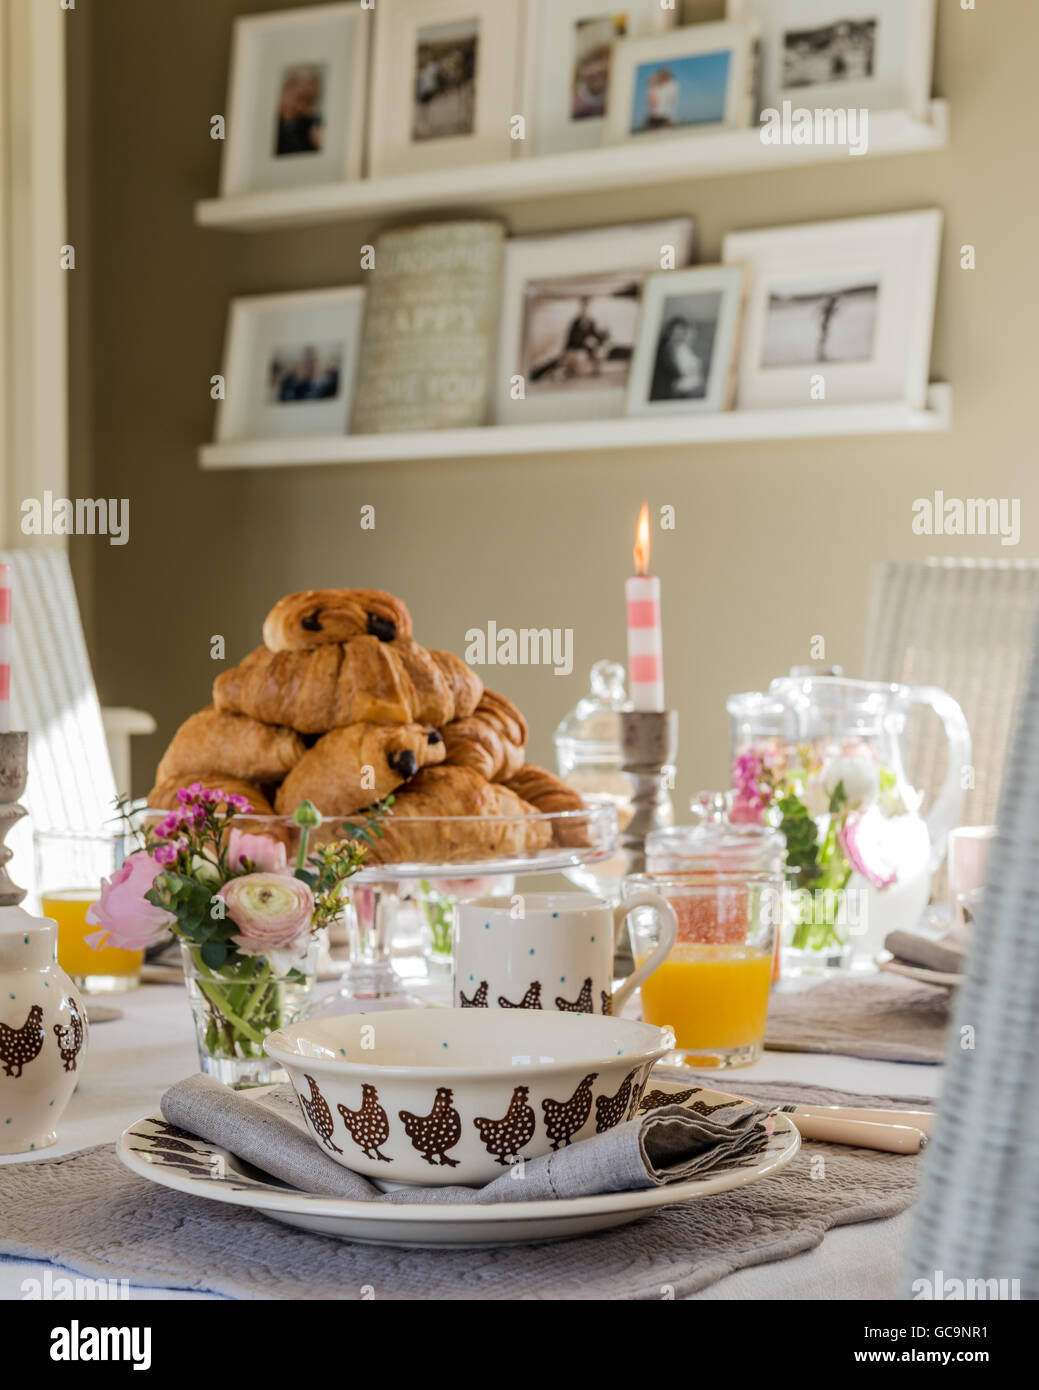 Pile of pain au chocolate on table laid for breakfast. Floating shelves are on the wall in the background displaying - Stock Image